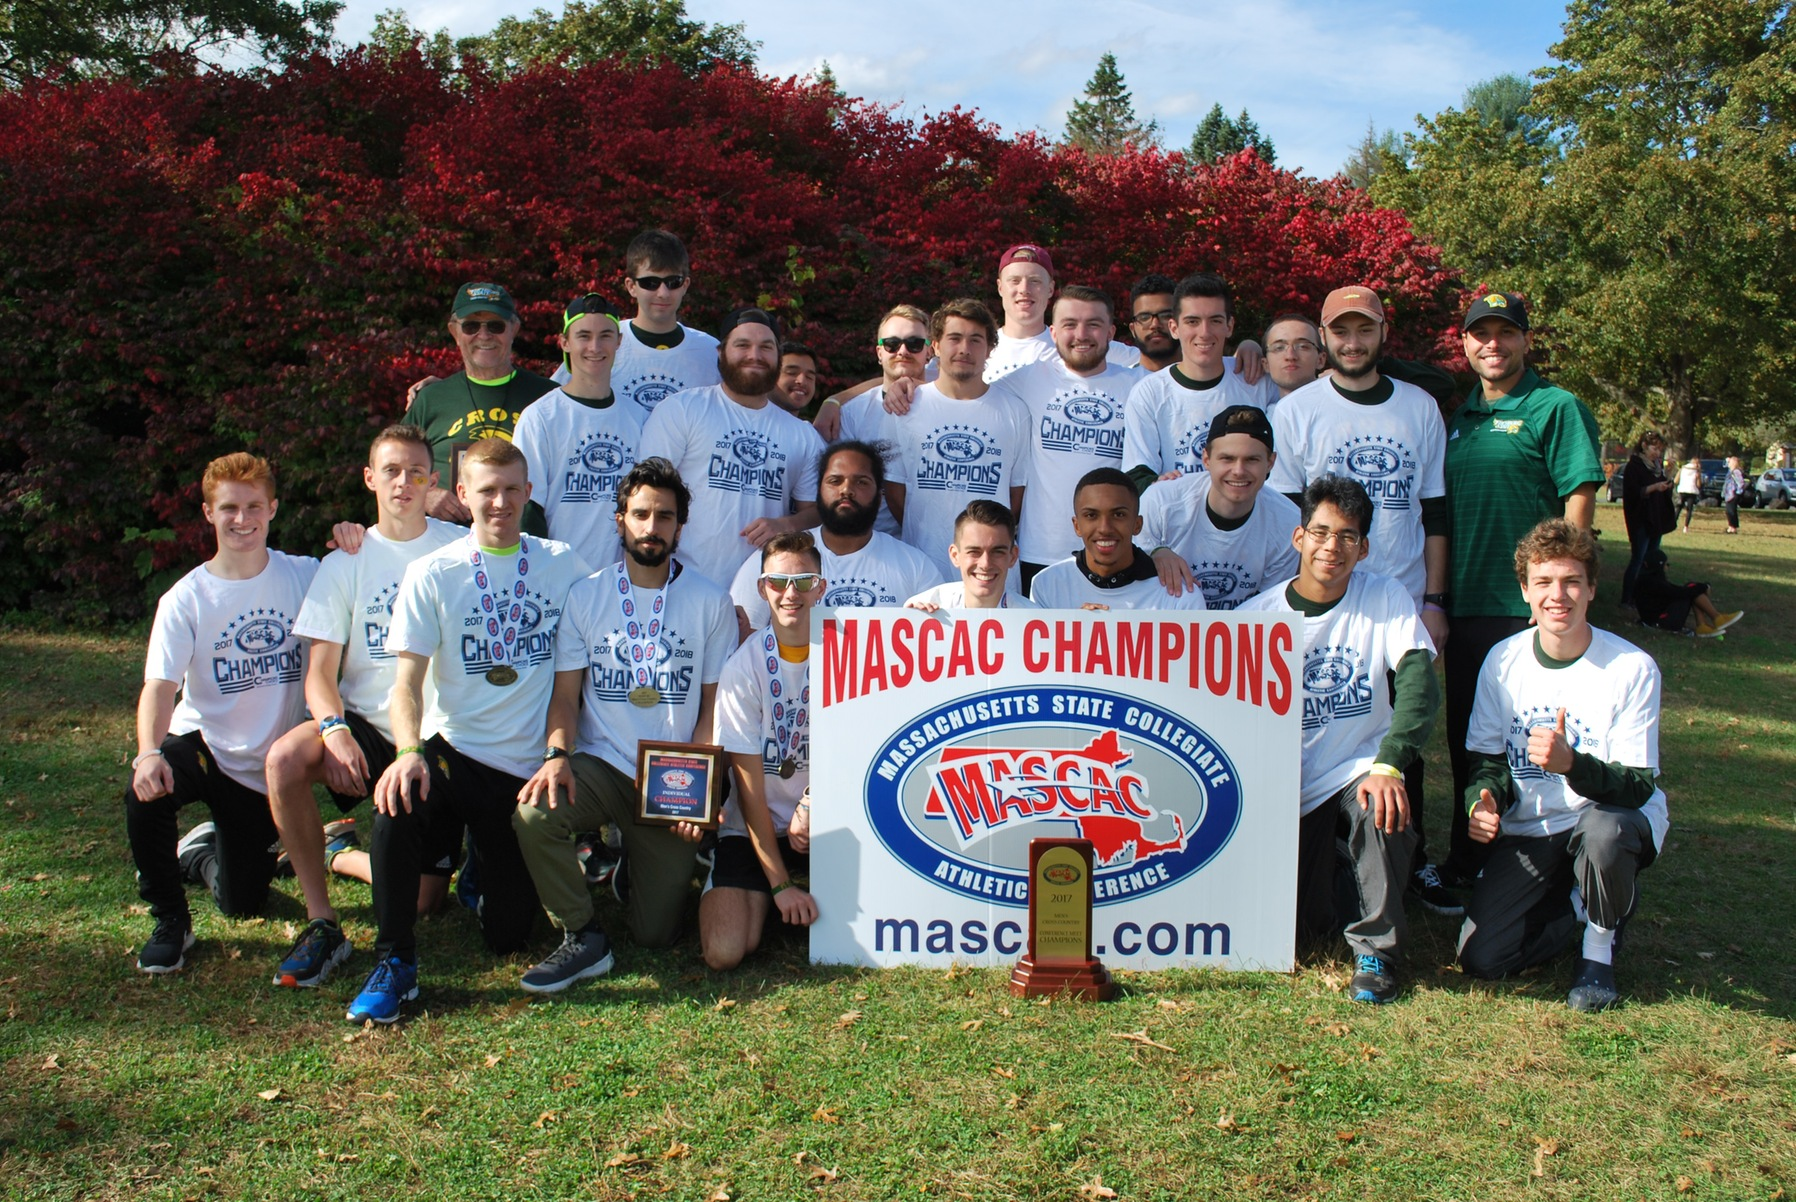 Falcons Claim MASCAC Men's Cross Country Championship